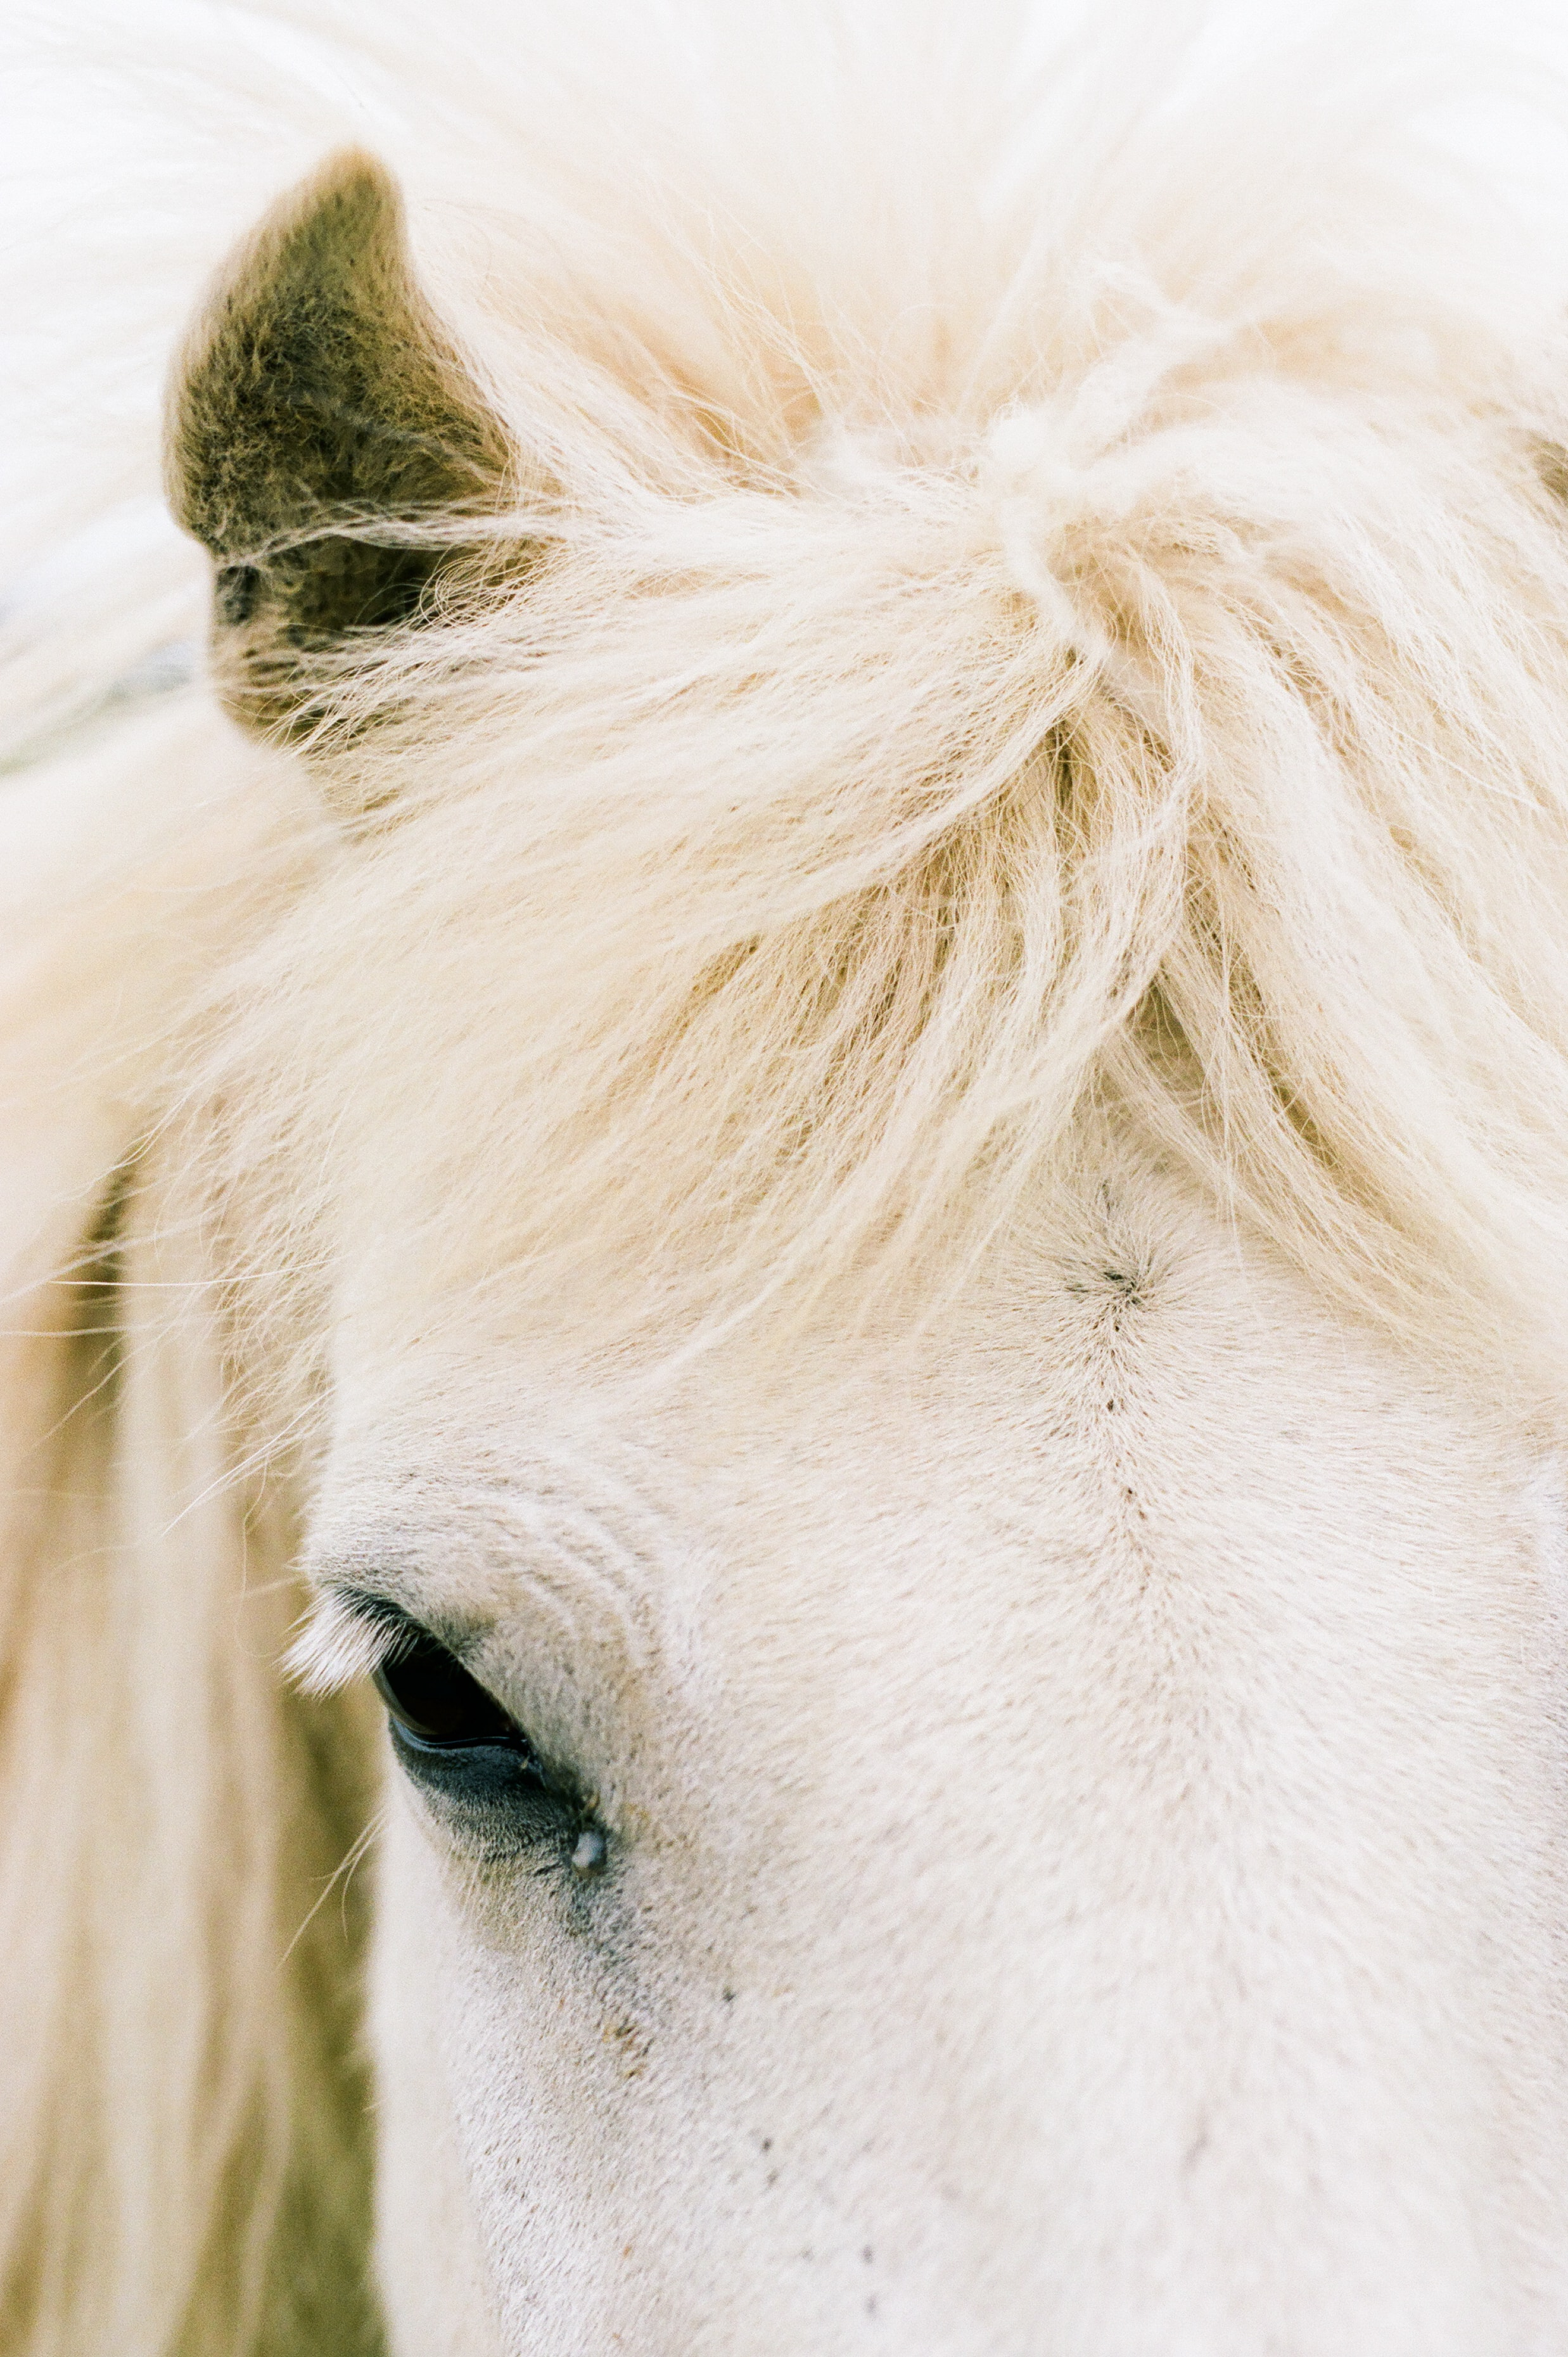 Horses in Iceland by Amilia James now on Cottage Hill9.jpg